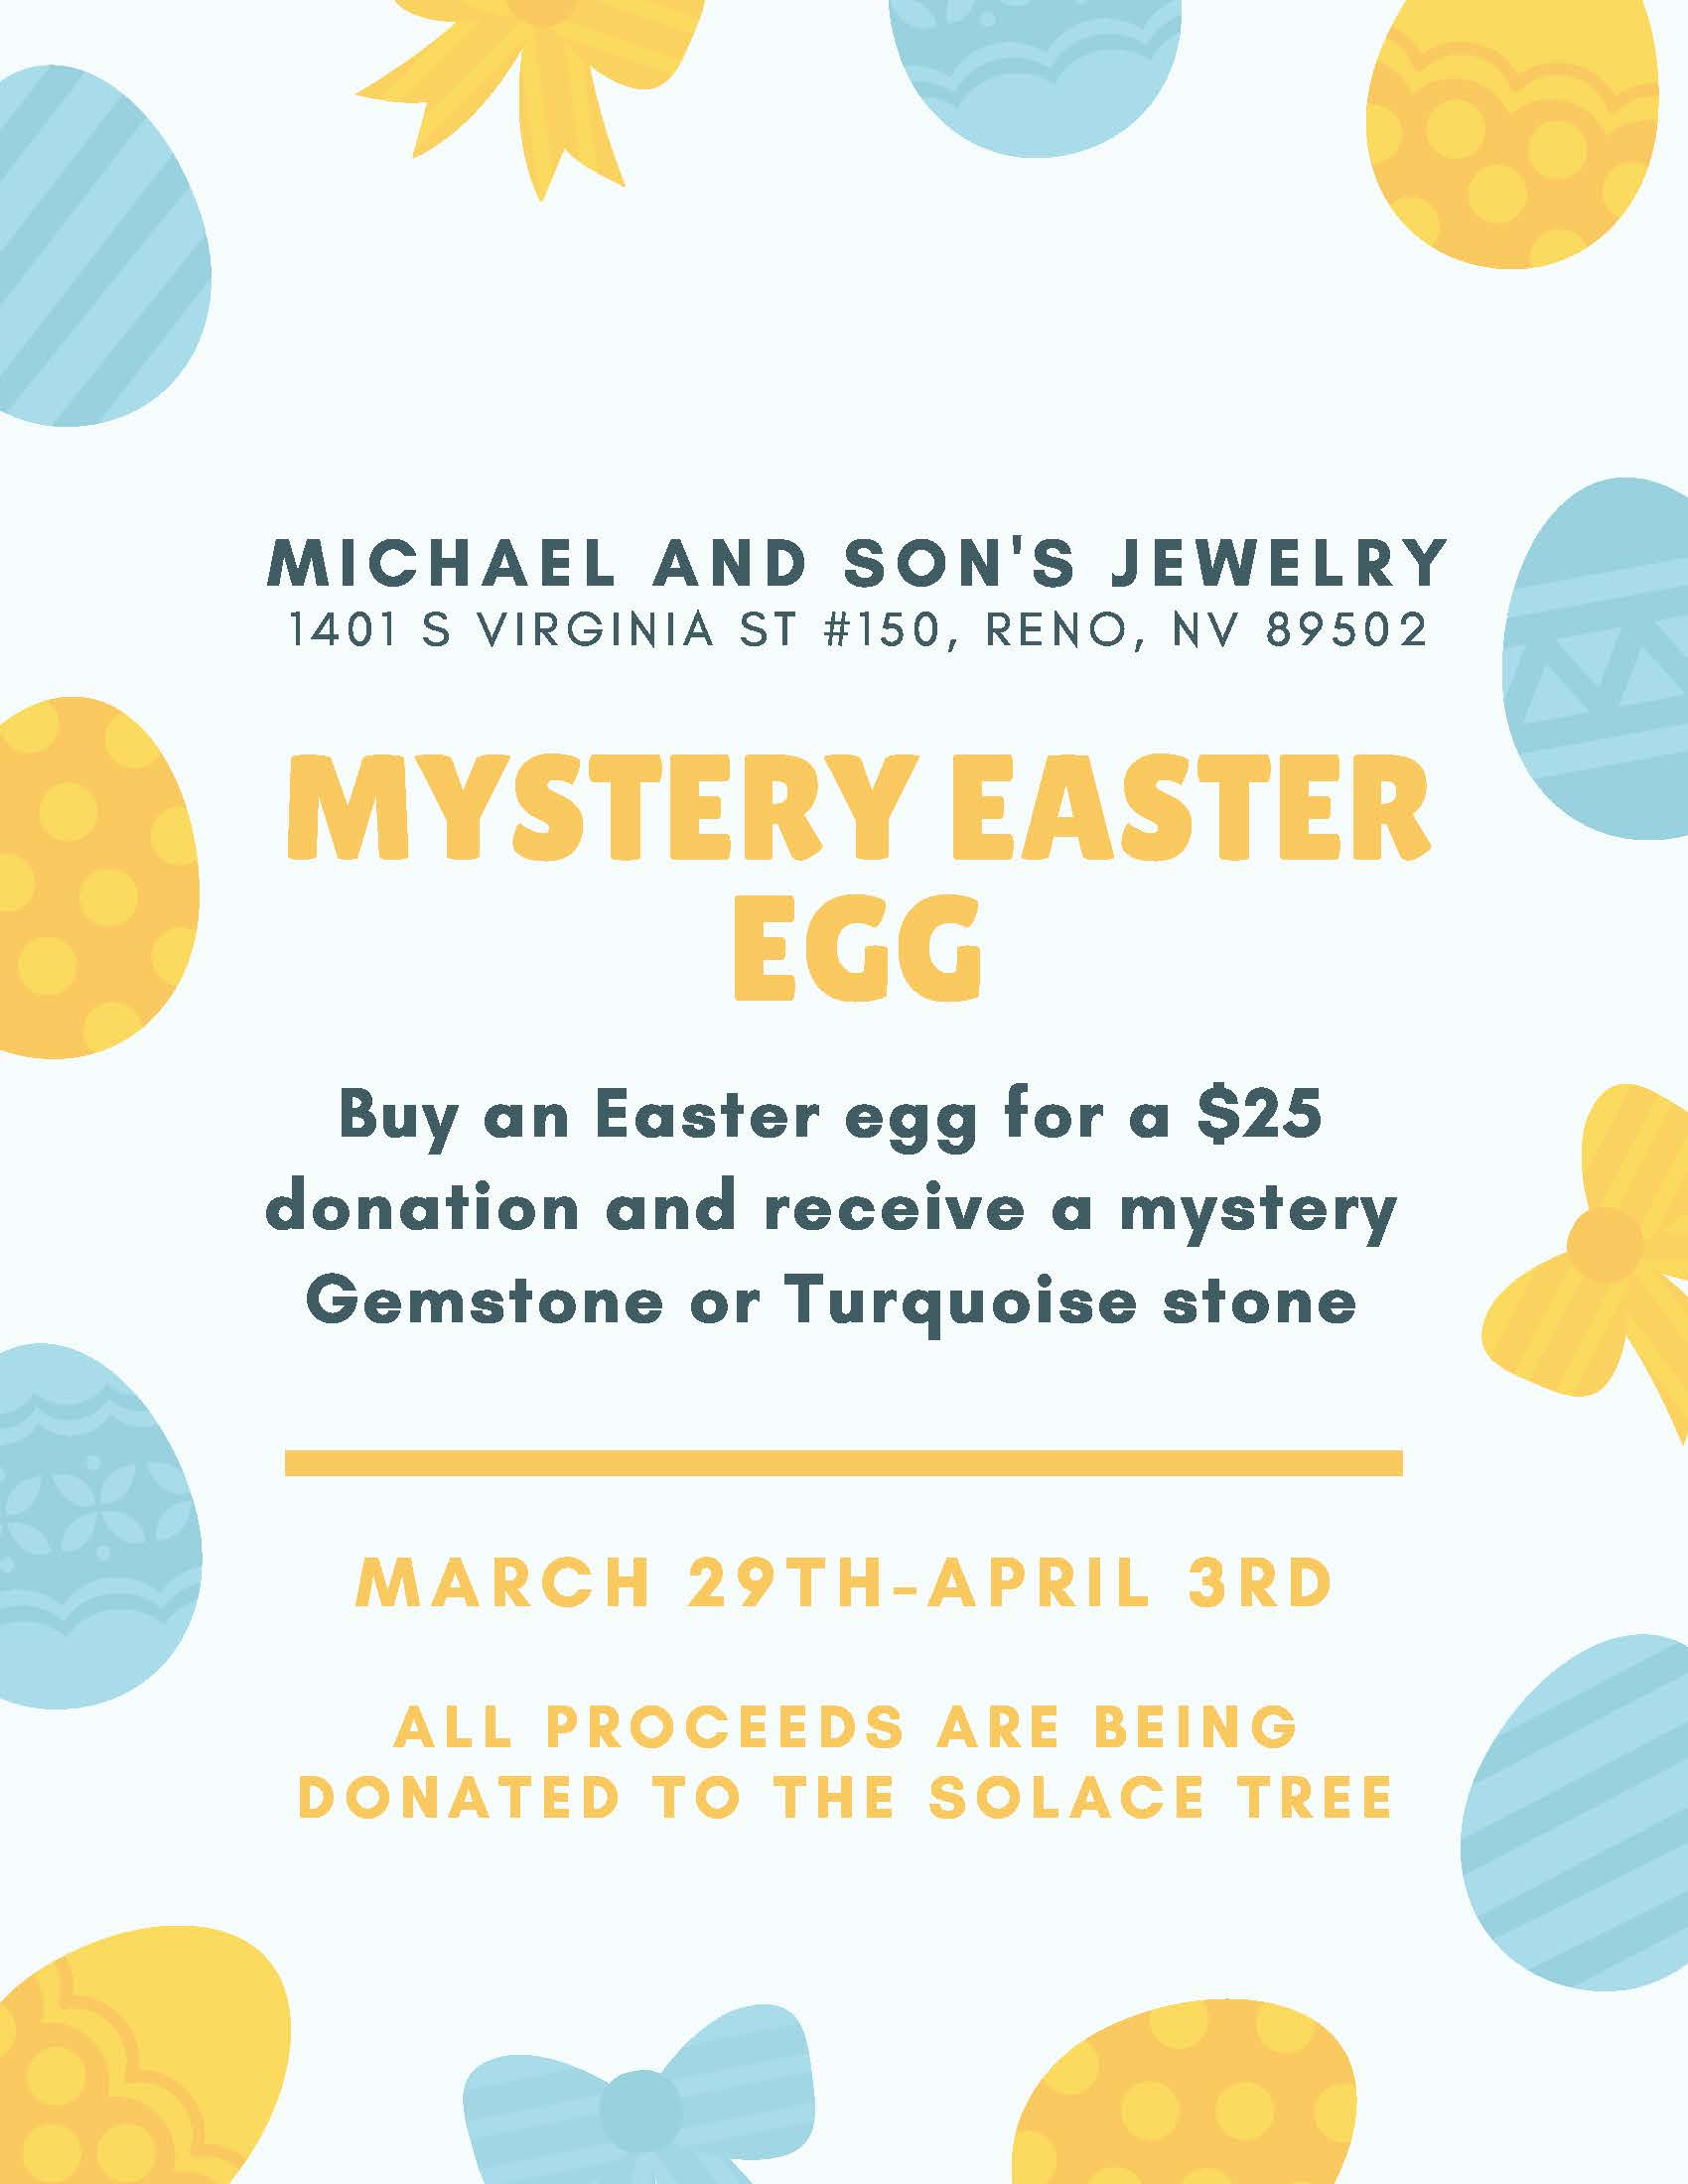 2021 Easter Egg Event at Michael & Sons Jewelers to Benefit The Solace Tree.